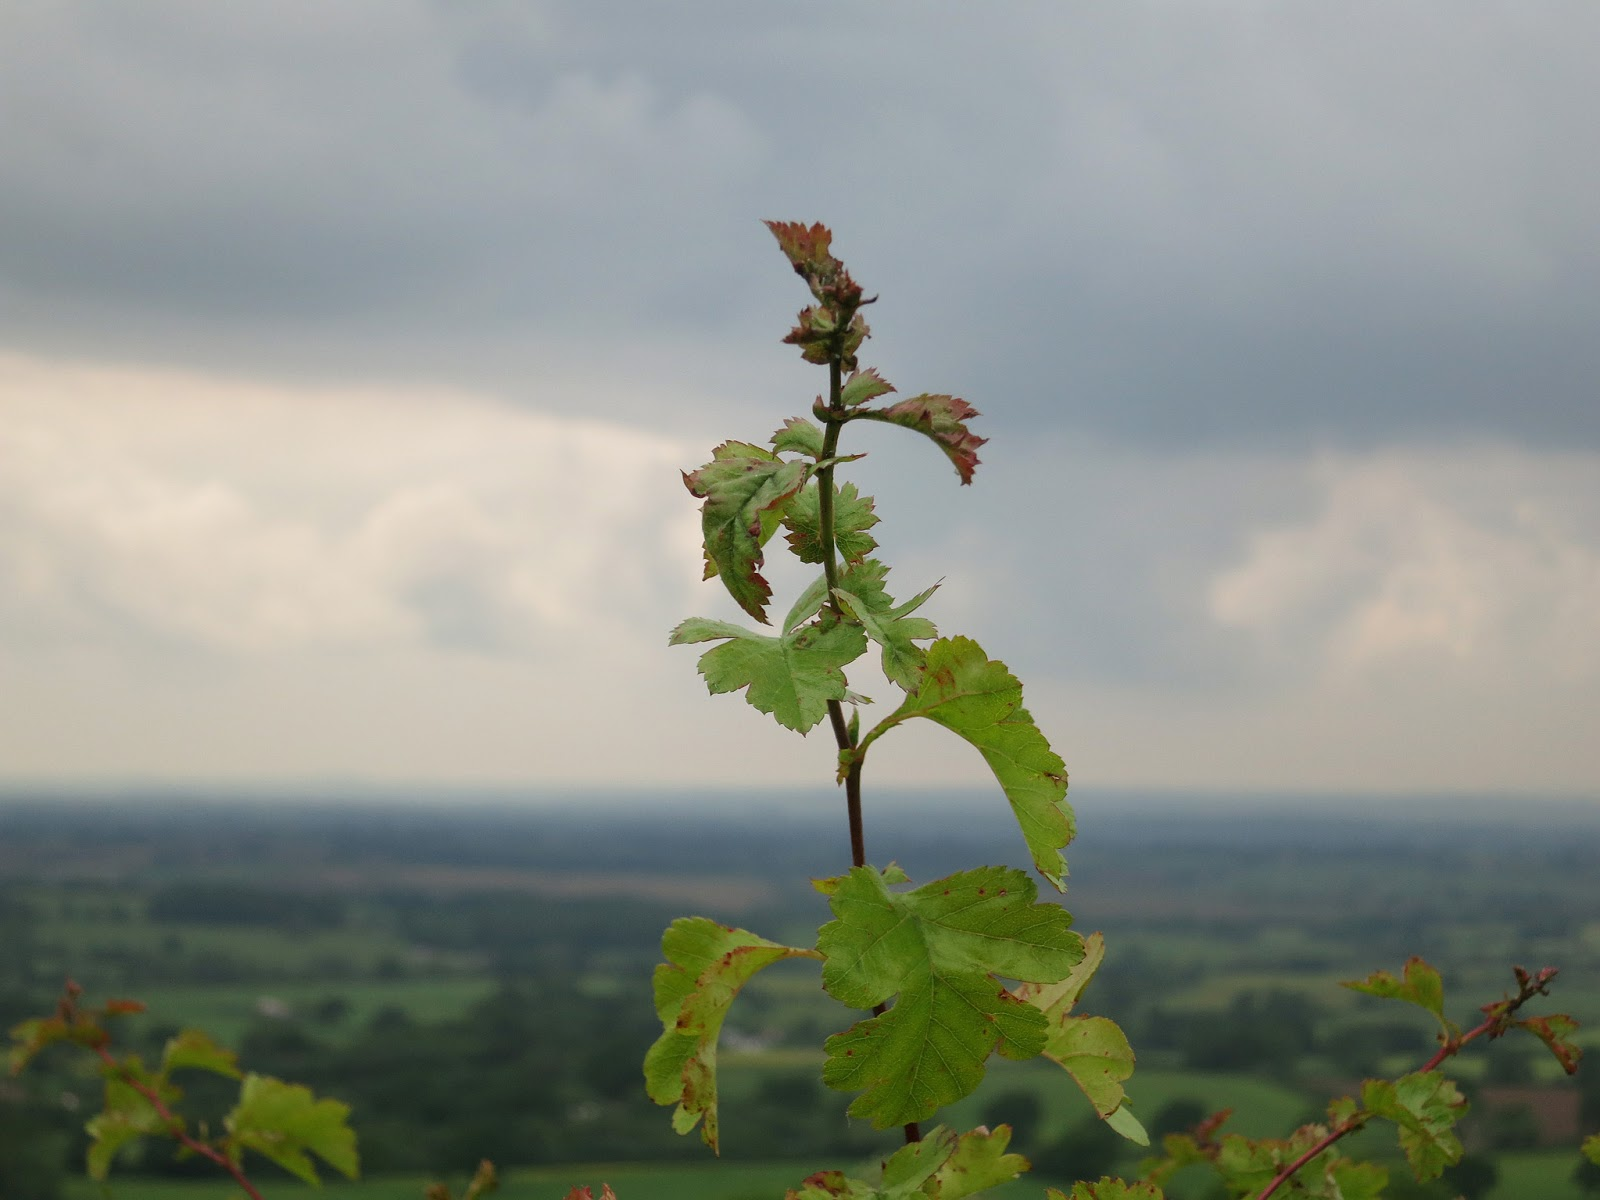 Hathorn twig high on hill above Dorset countryside with sky indicating rain is nigh